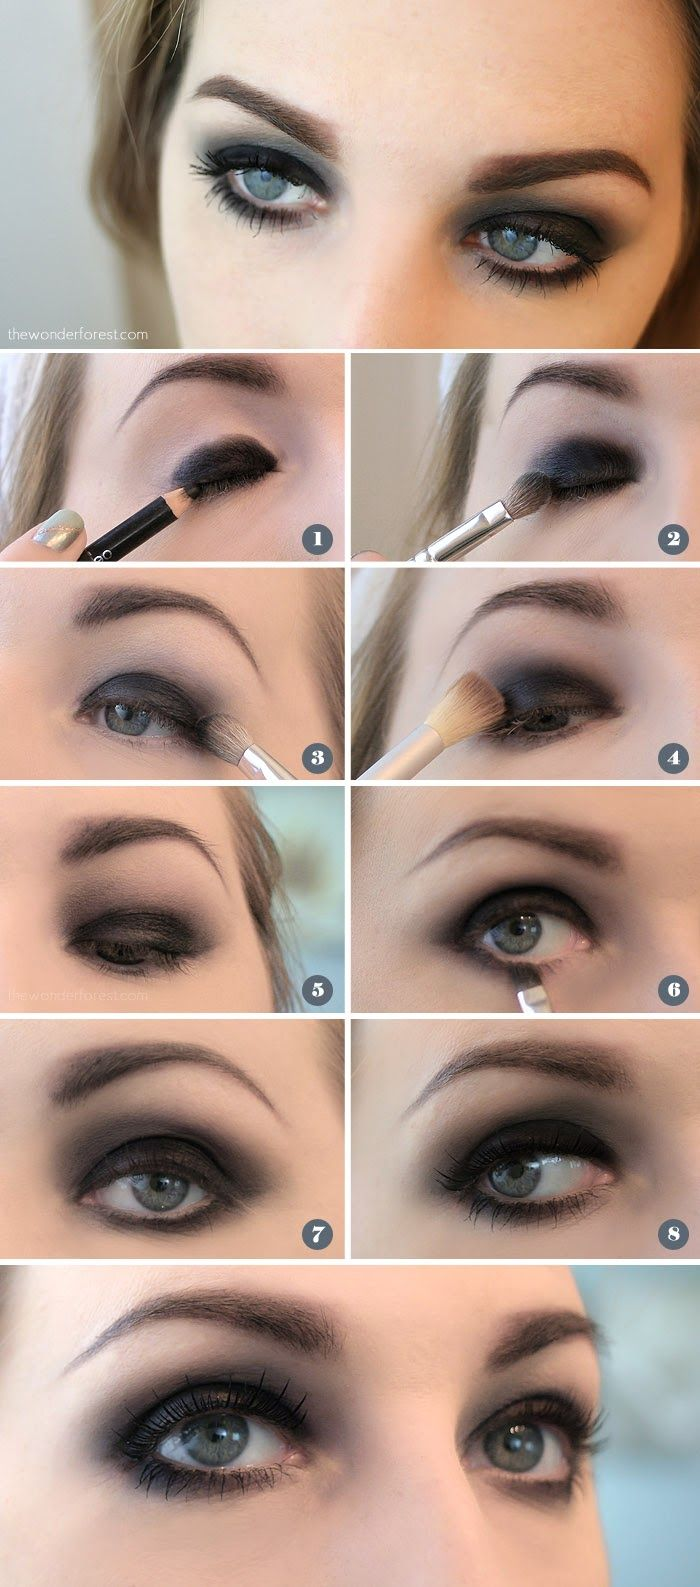 I plan to use this eye makeup technique for my pirate costume. Excellent descriptions for each step.